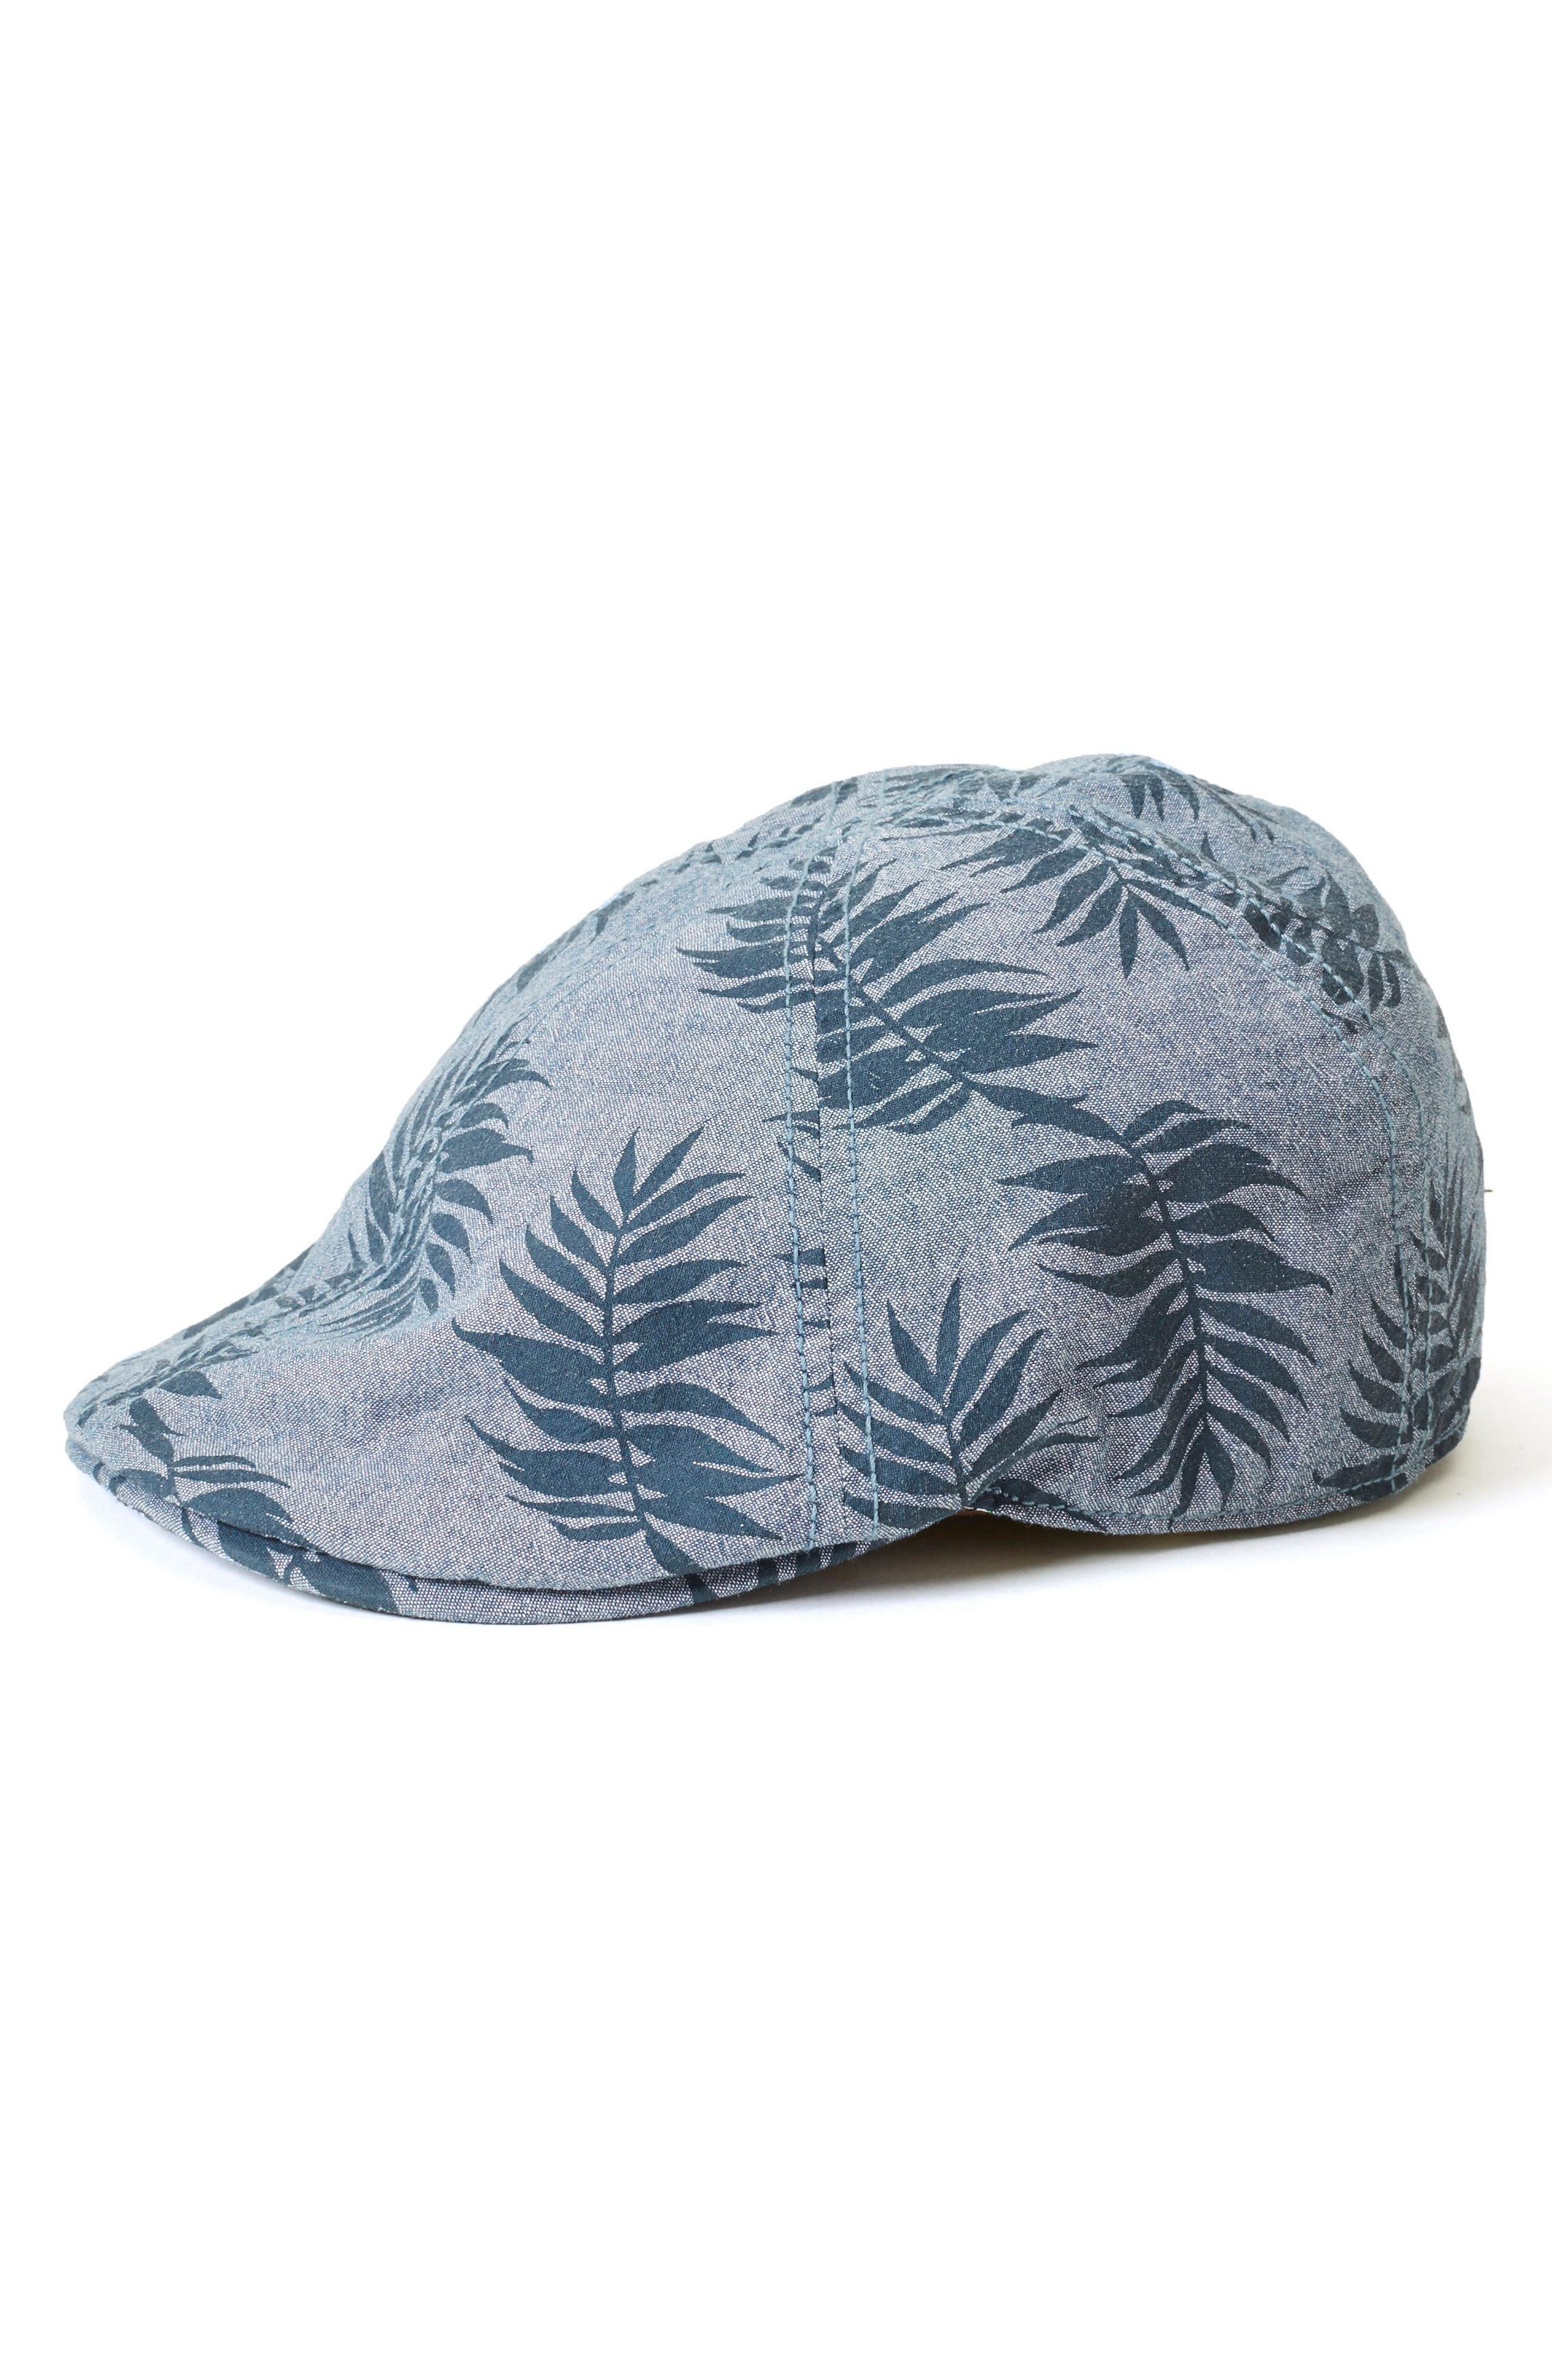 GOORIN BROTHERS Beach Please Driving Cap